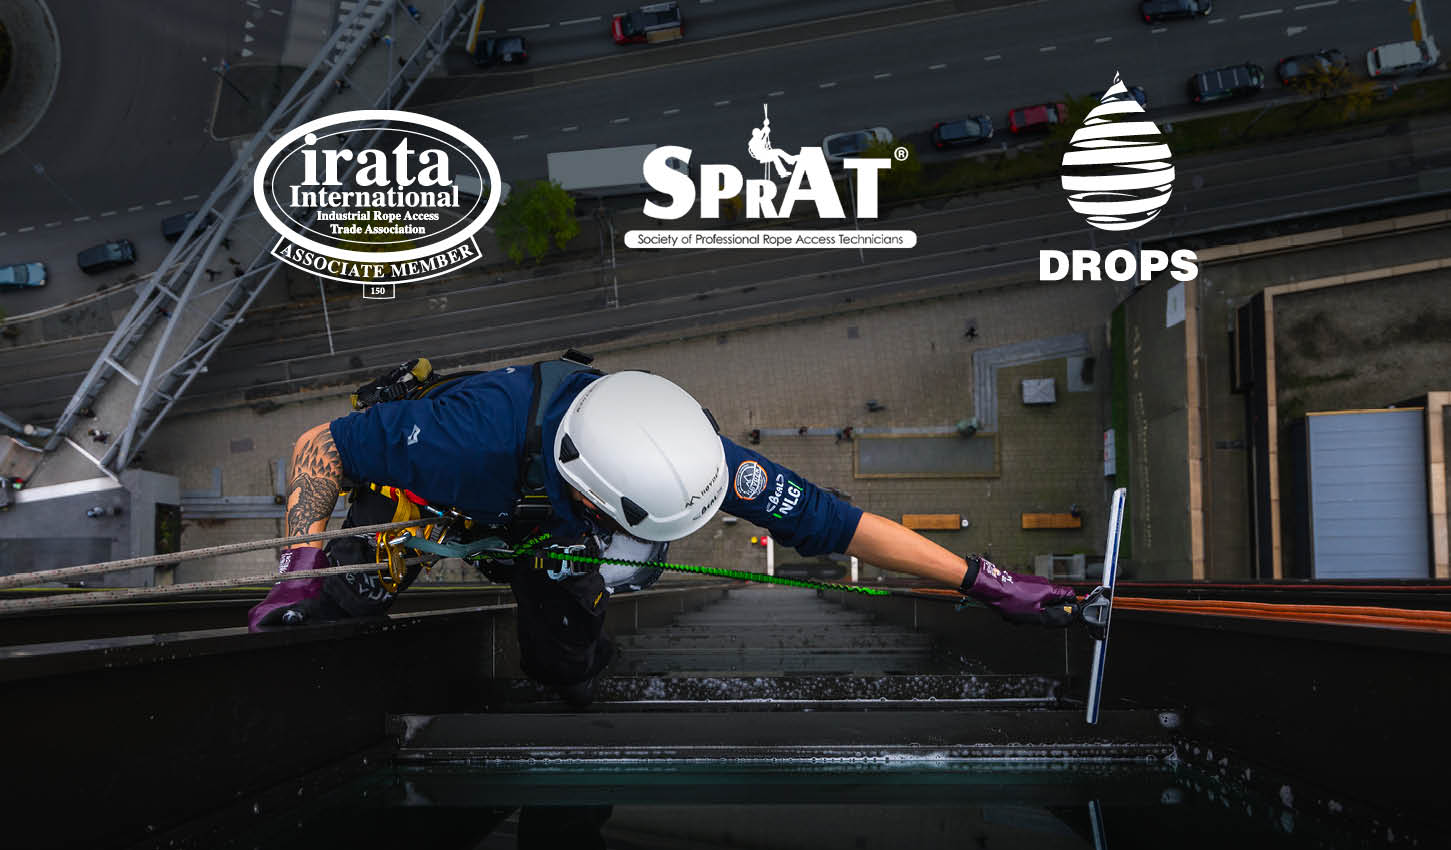 Irata Sprat Drops Approved Tool Lanyards and Tethering Equipment